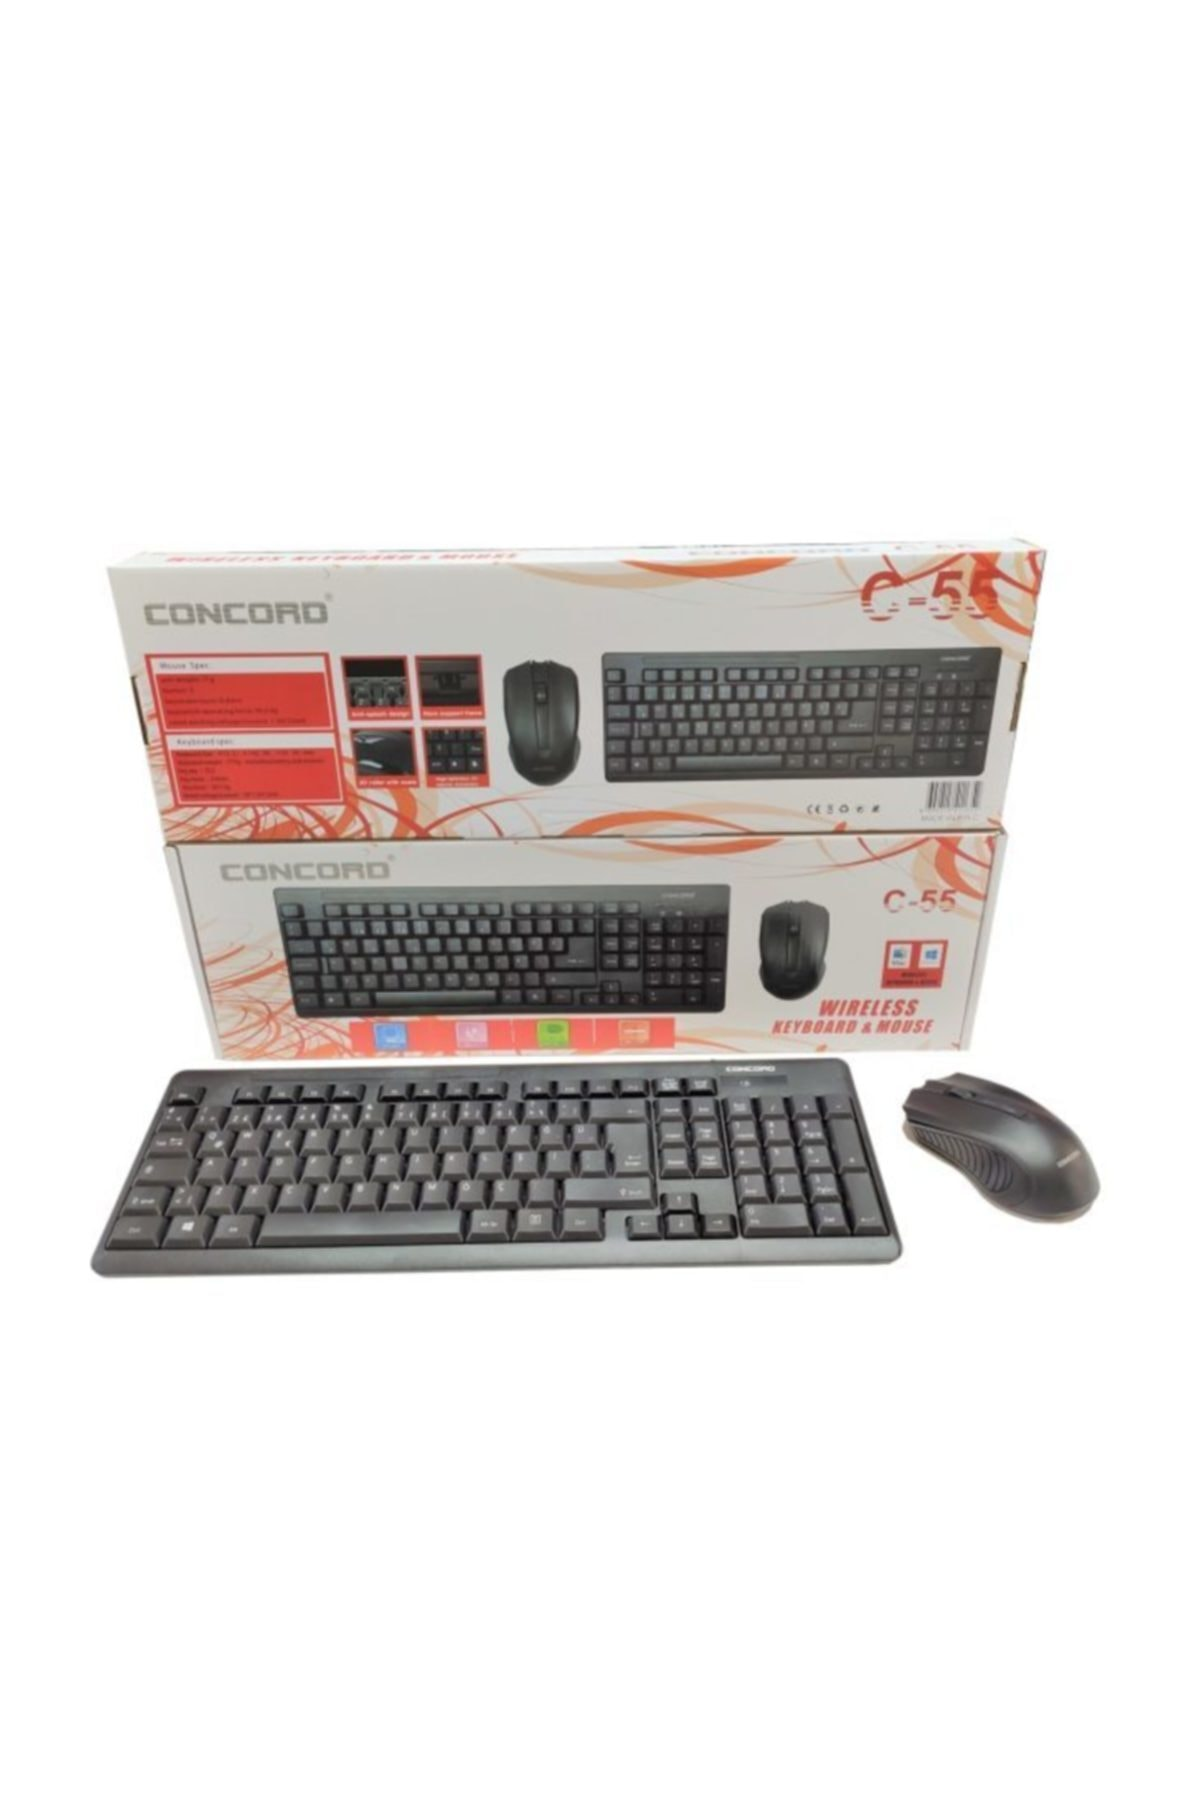 Concord C-55 Wıreless Keyboard + mouse 1